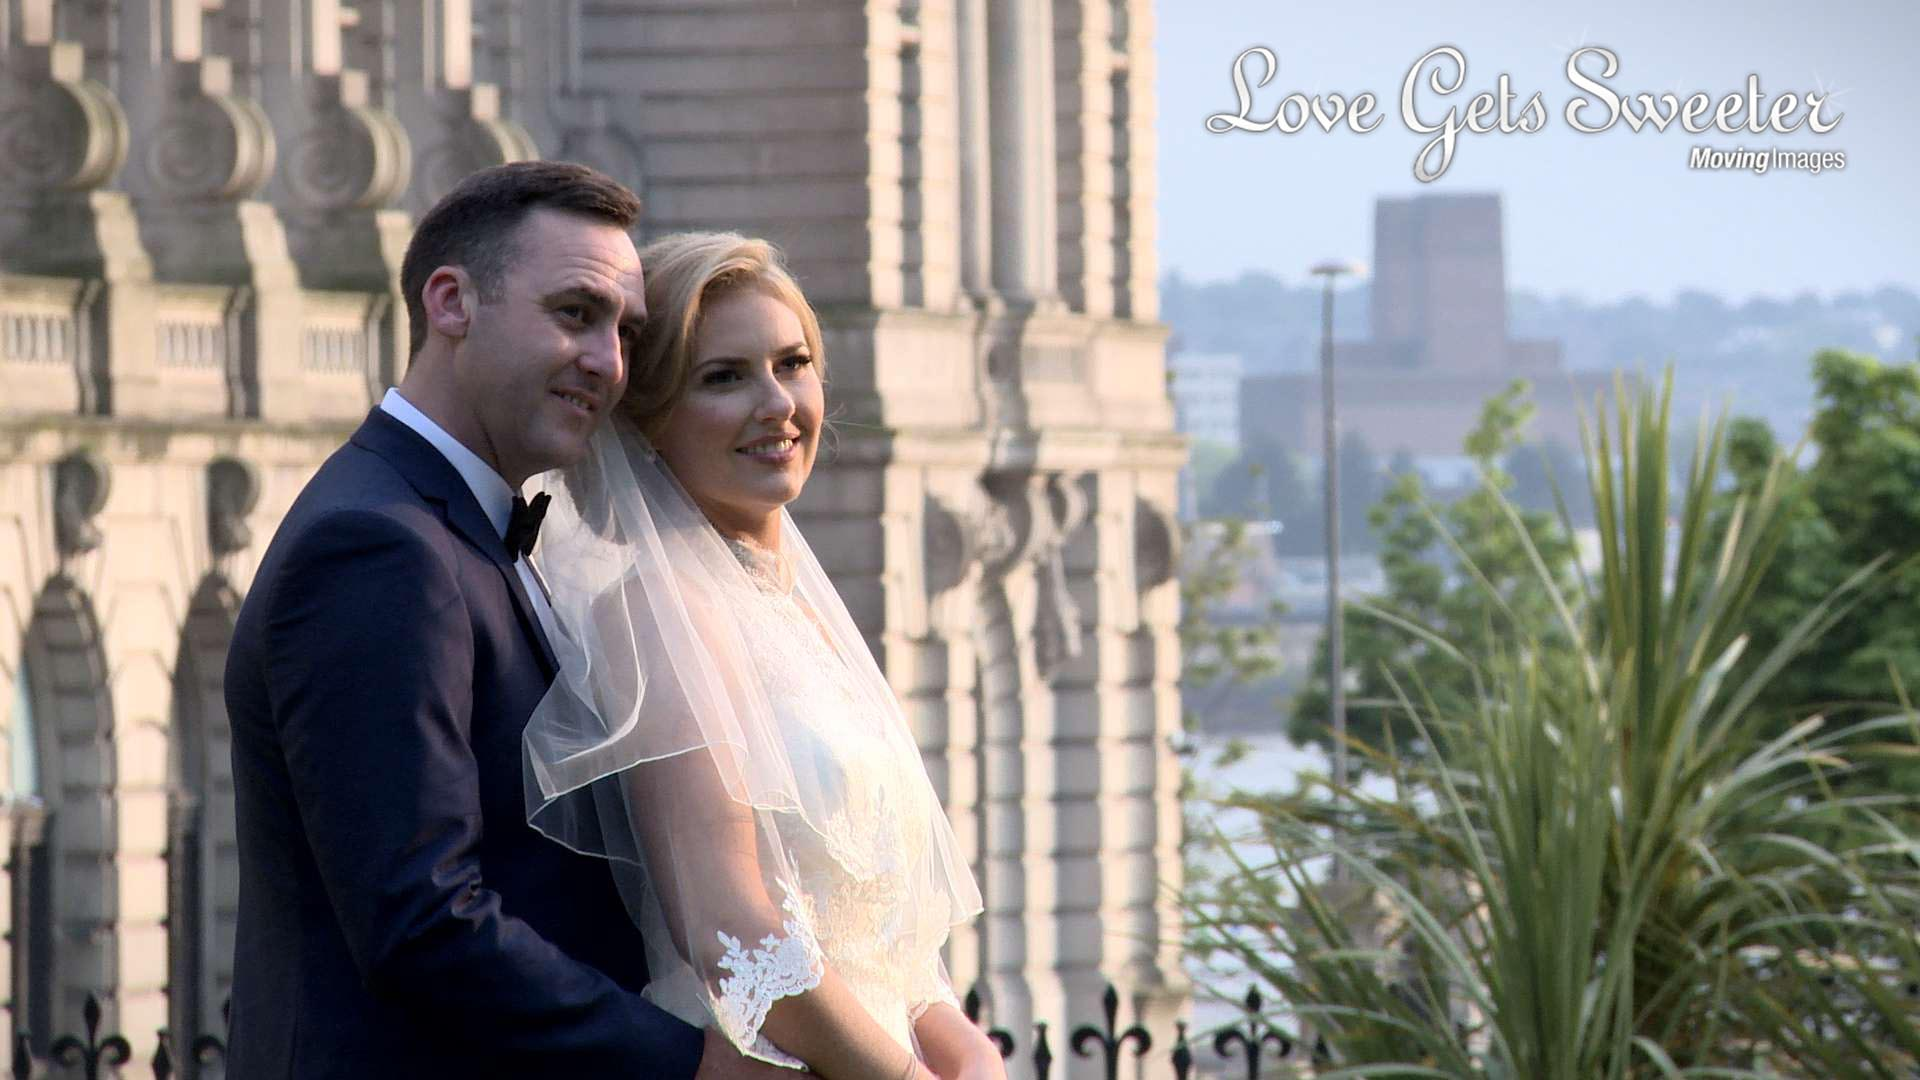 A Glamorous Liverpool Wedding Video